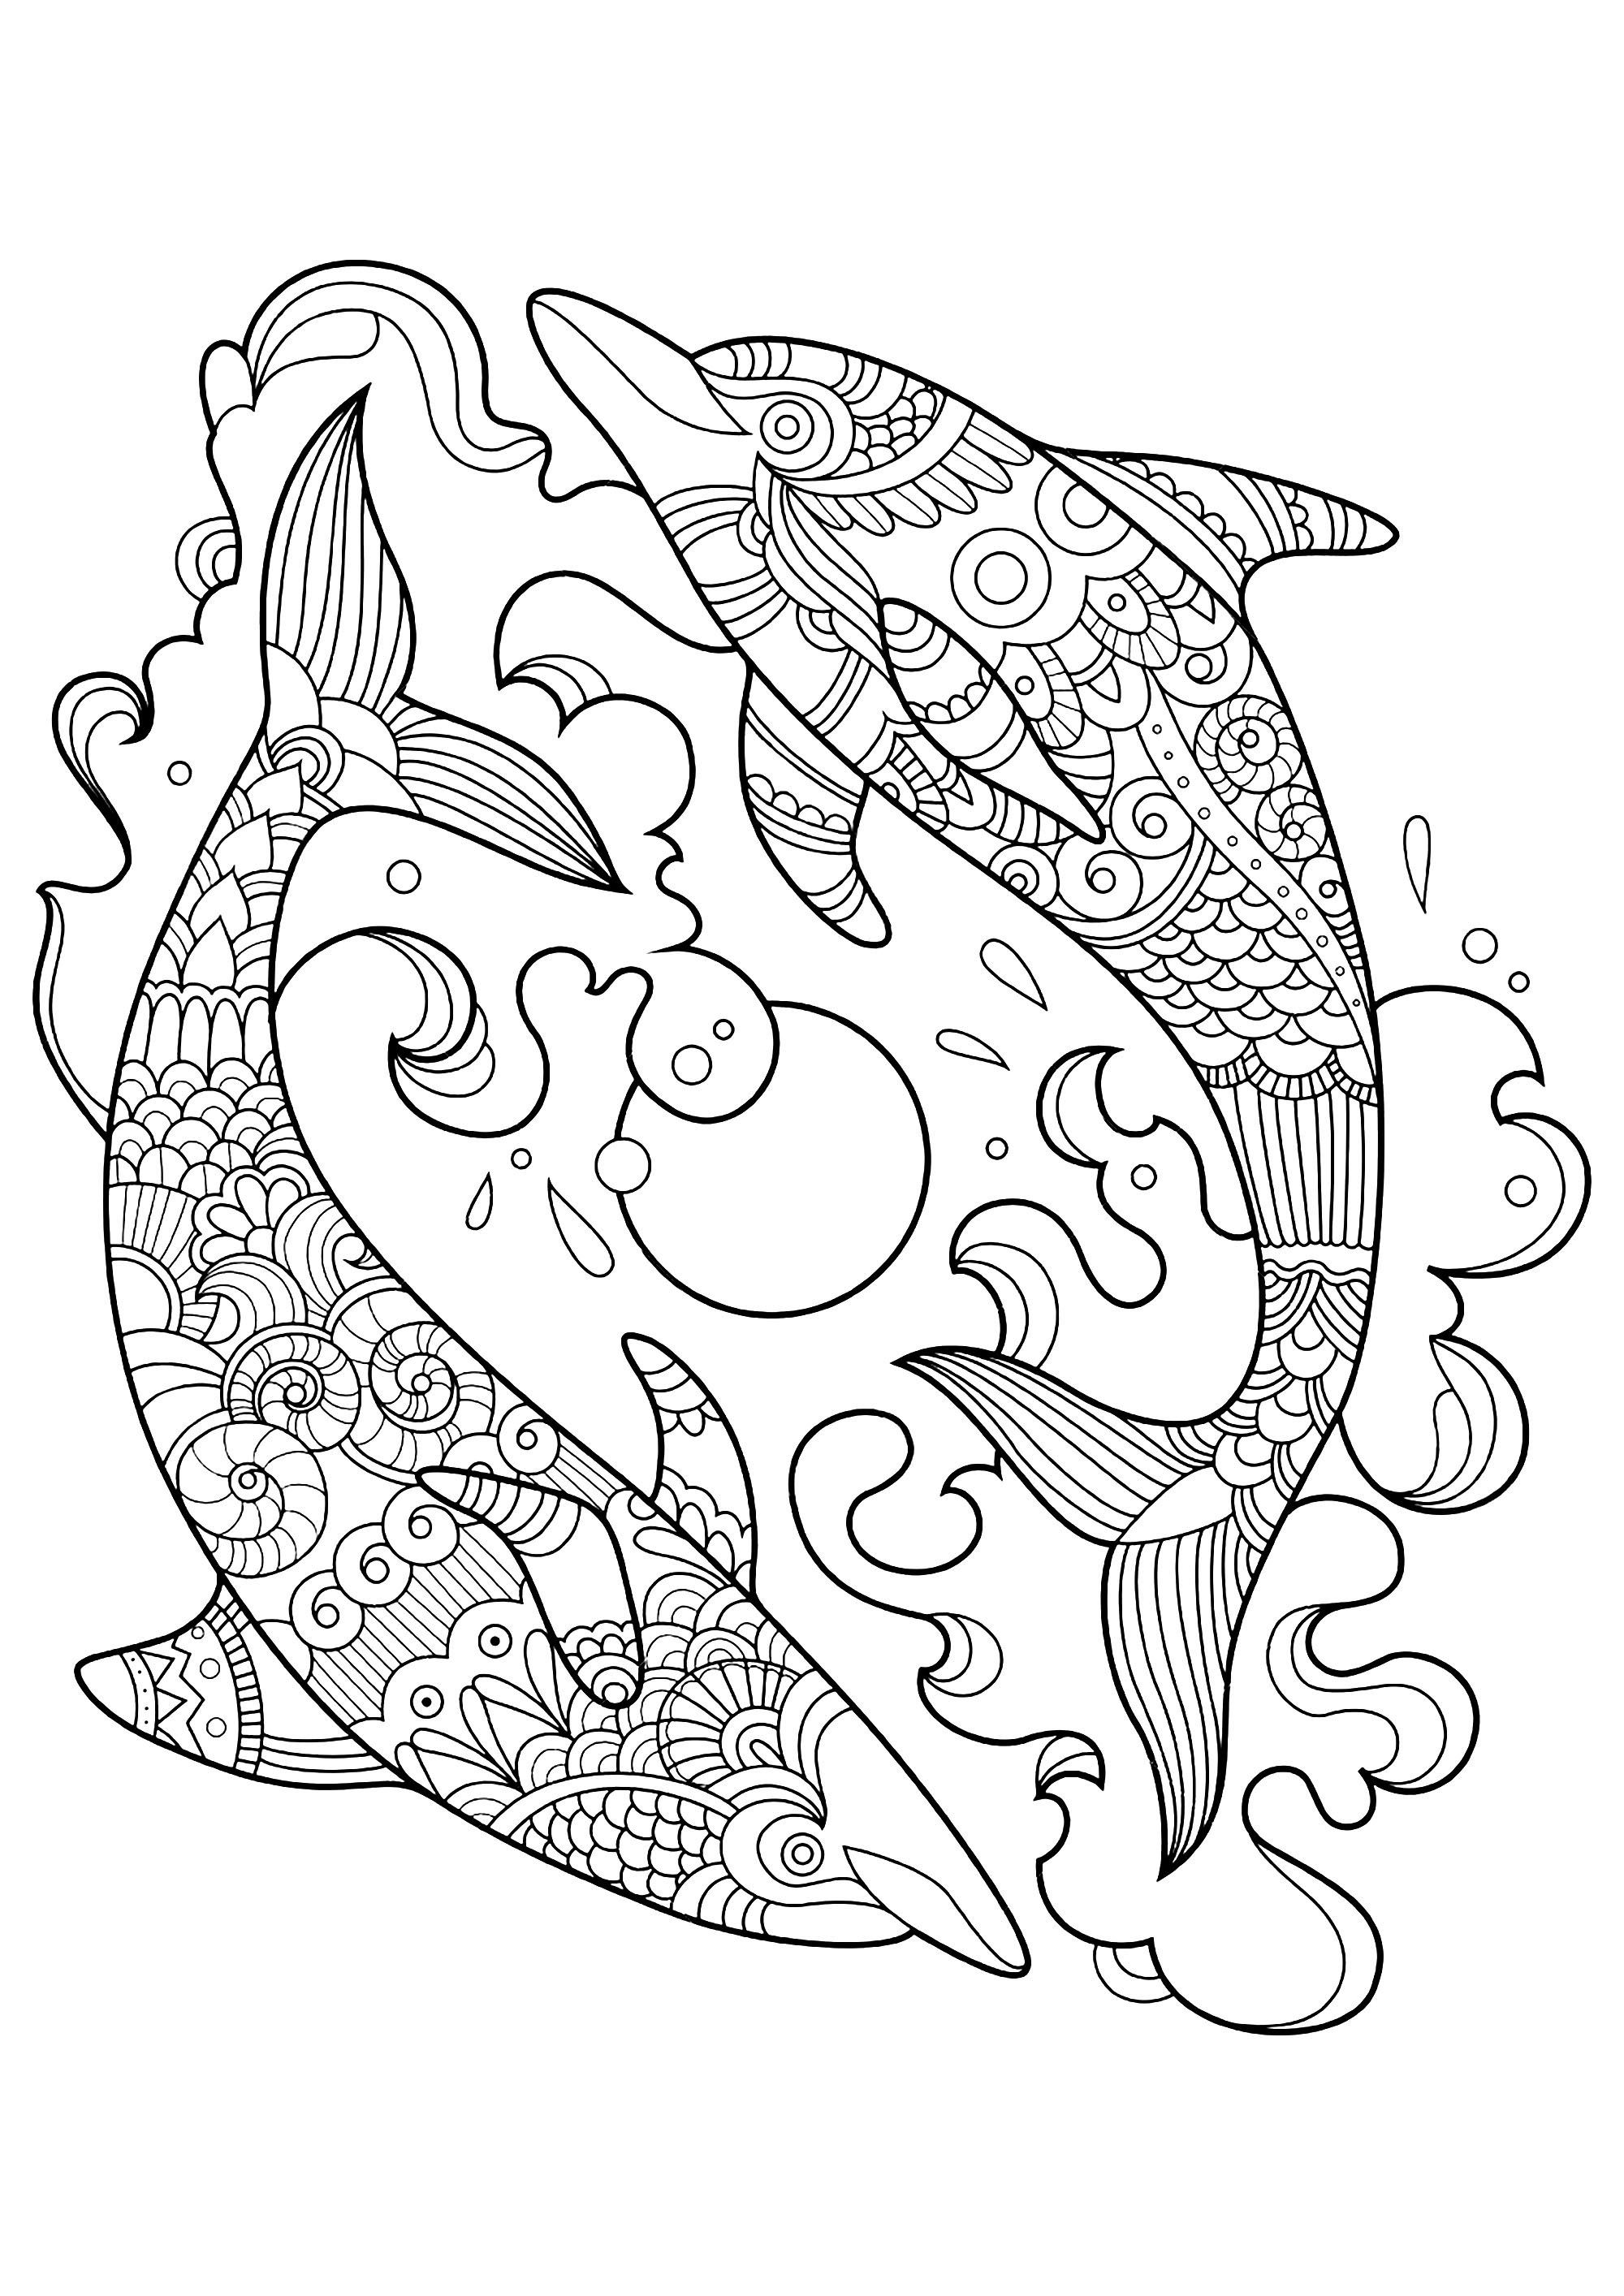 Dolphins to color for children Funny Dolphins coloring